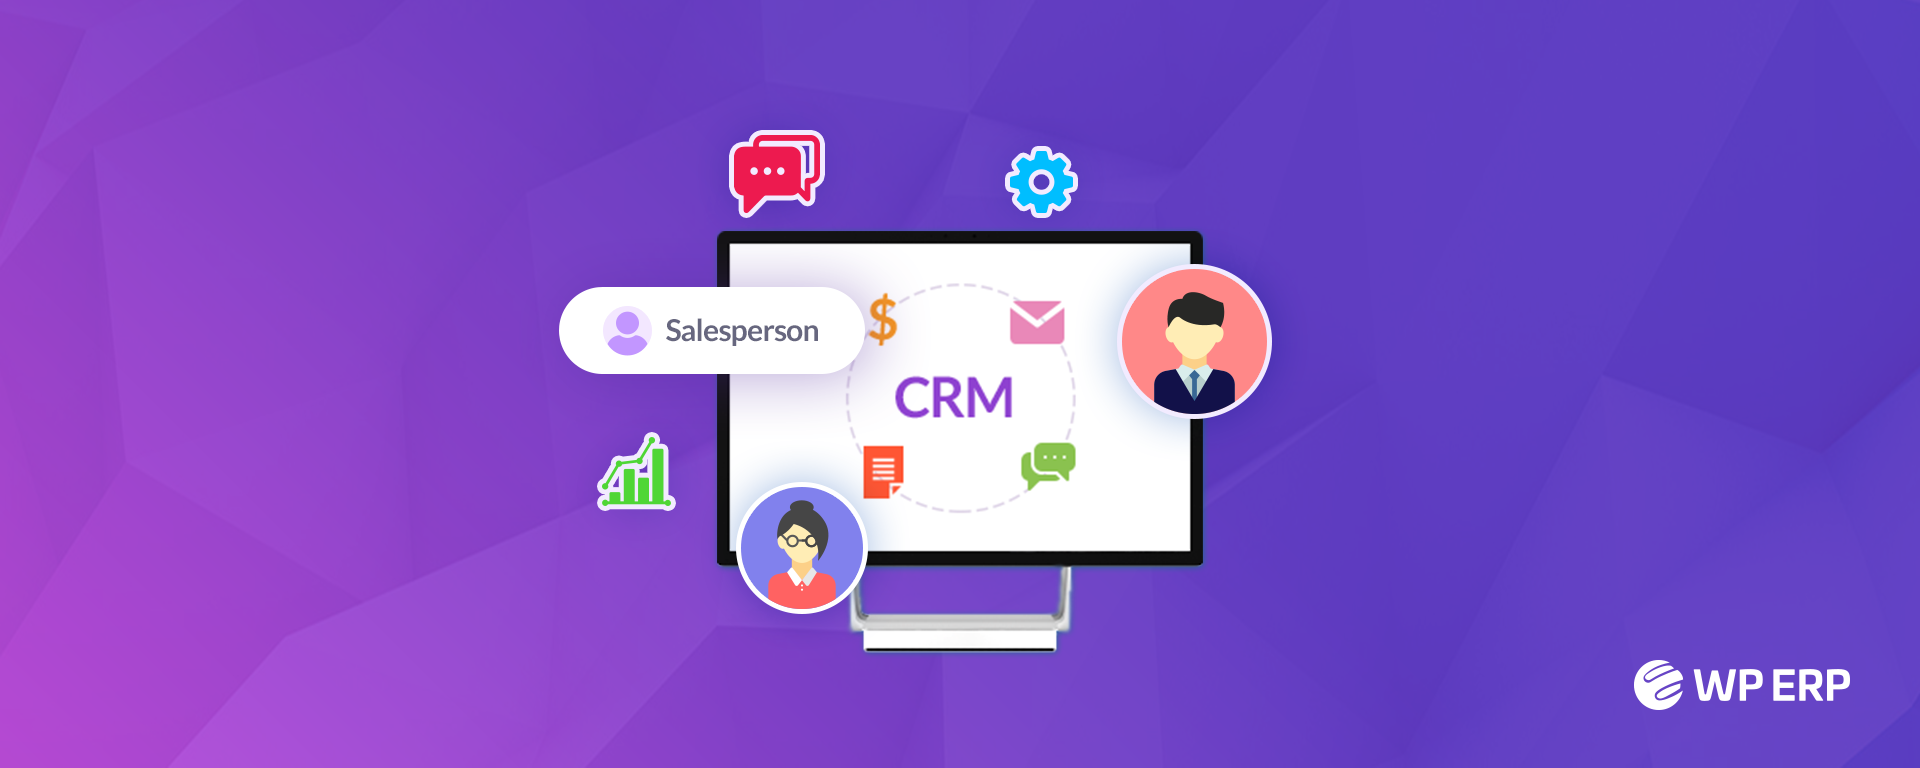 WordPress CRM System